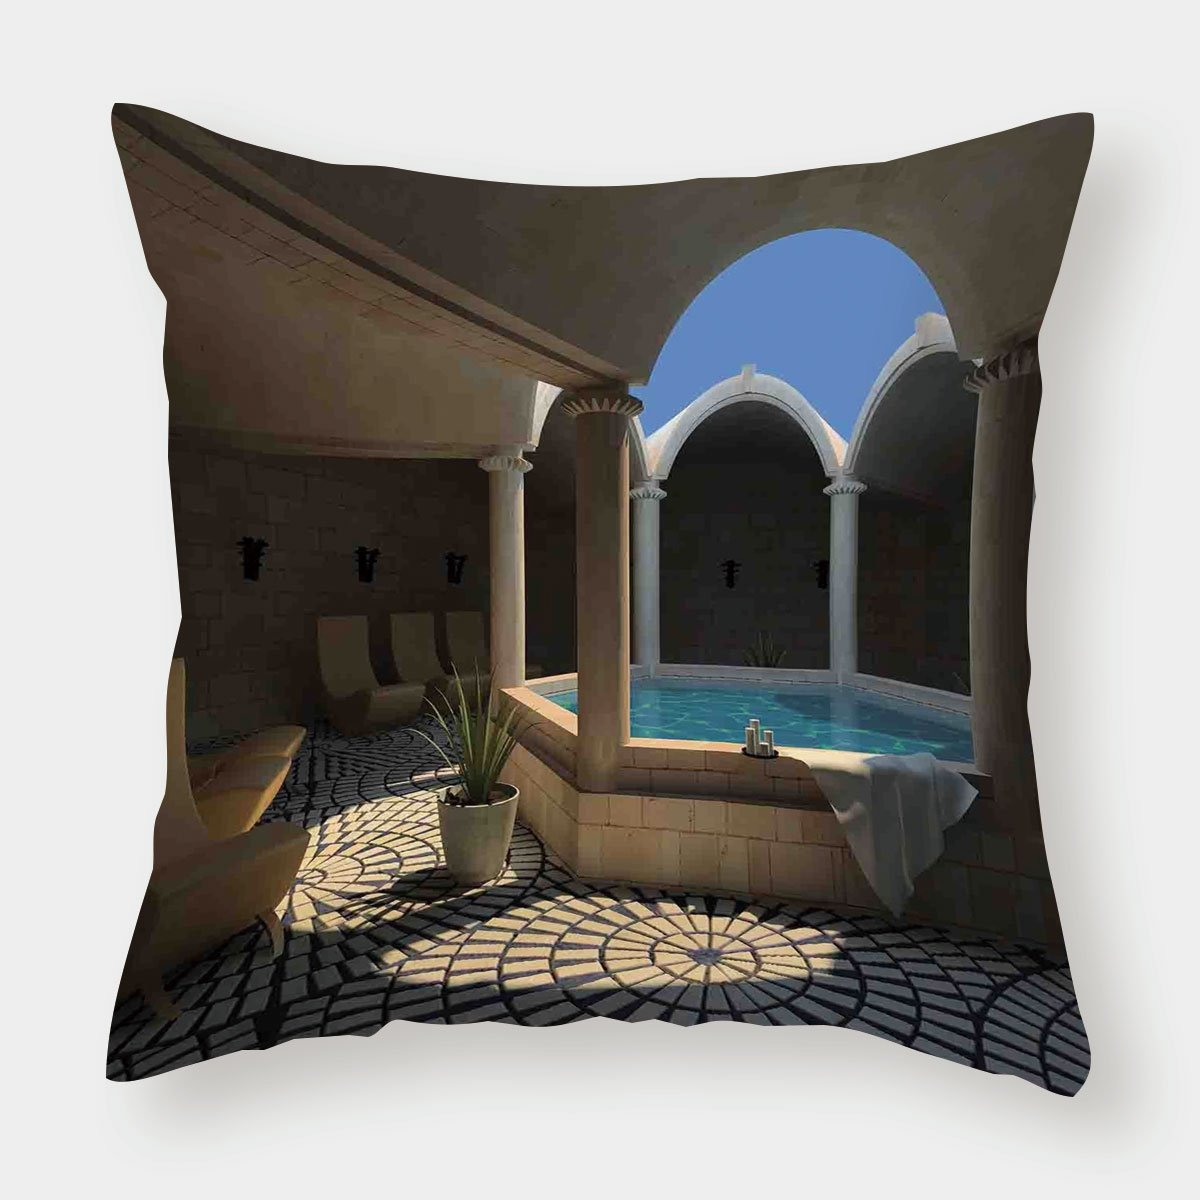 Microfiber Throw Pillow Cushion Cover,Landscape,Inside View of A Spa Hotel with Bathtub in the Circle Centre Therapy Photo Print Decorative,Grey Blue,Decorative Square Accent Pillow Case by iPrint (Image #1)